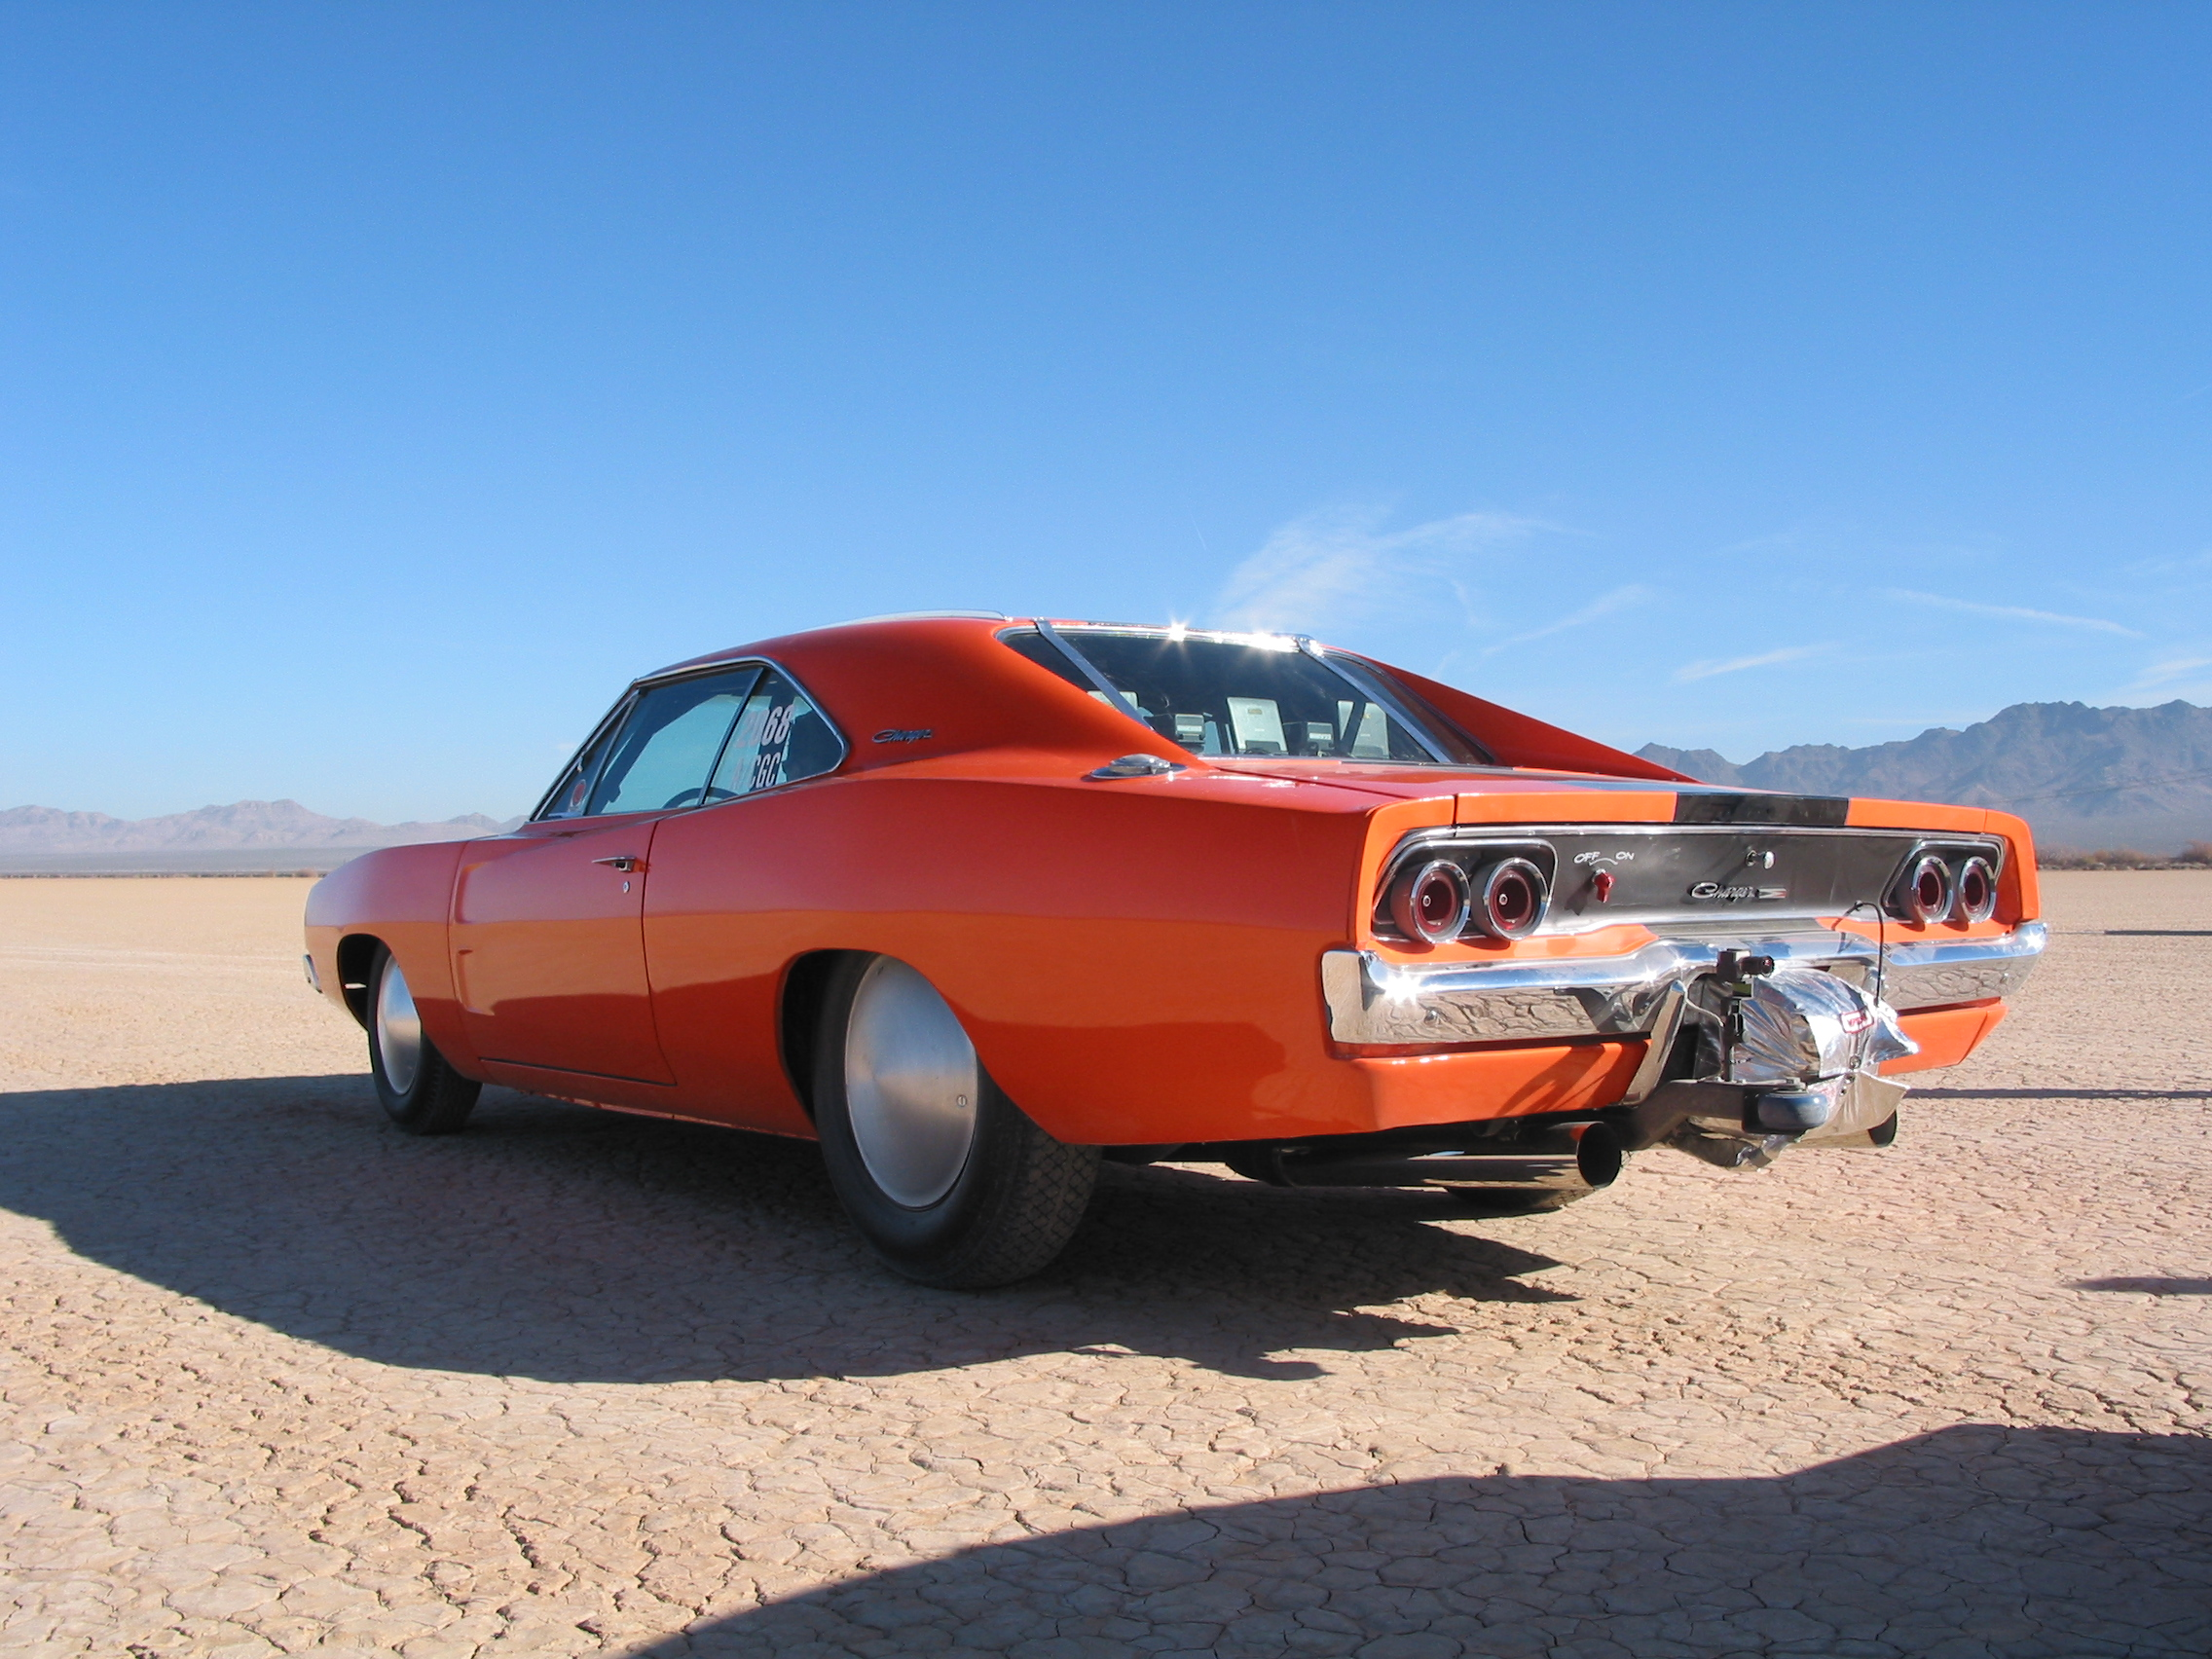 1968 Dodge Charger at the dry lake bed